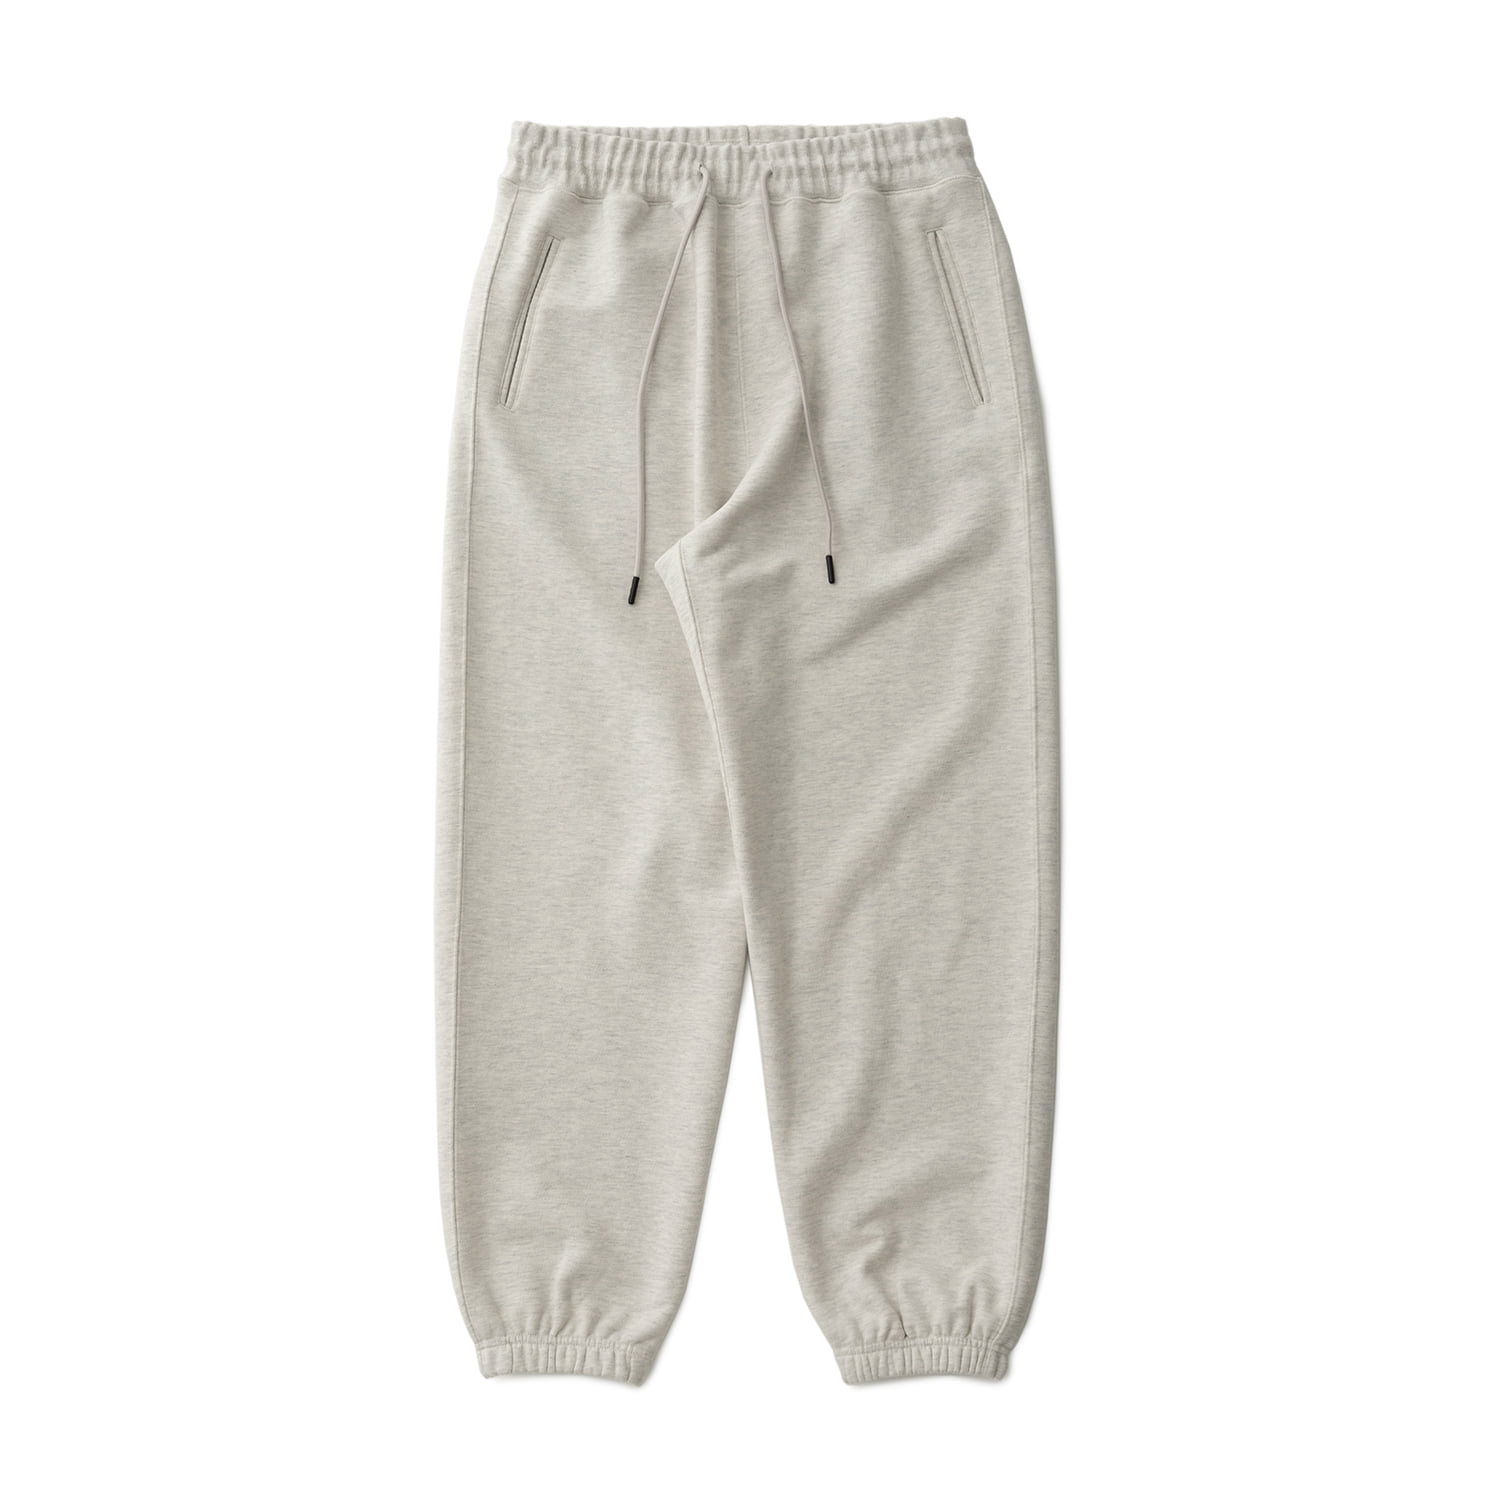 21SS Swallow Gymnasium Sweat Pants (Oatmeal)